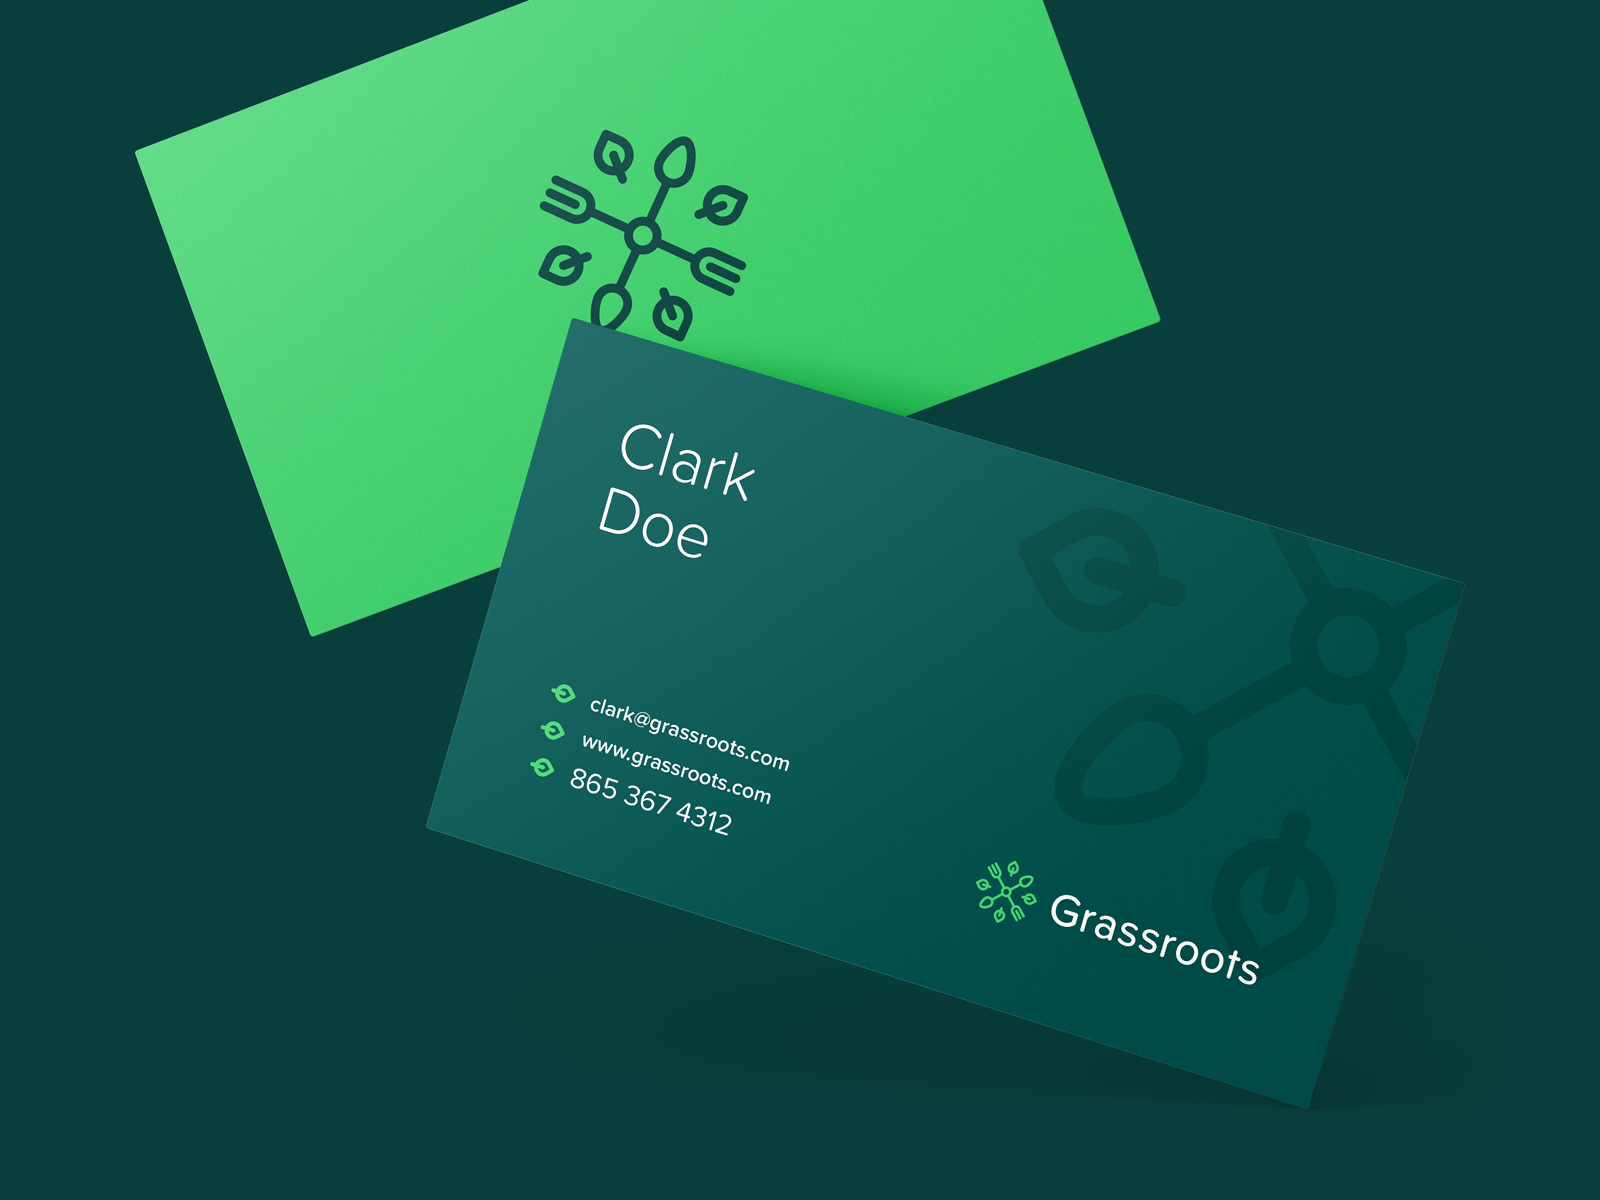 Grassroots Business Cards Food Business Card Design Green Brand Identity Business Card Inspiration